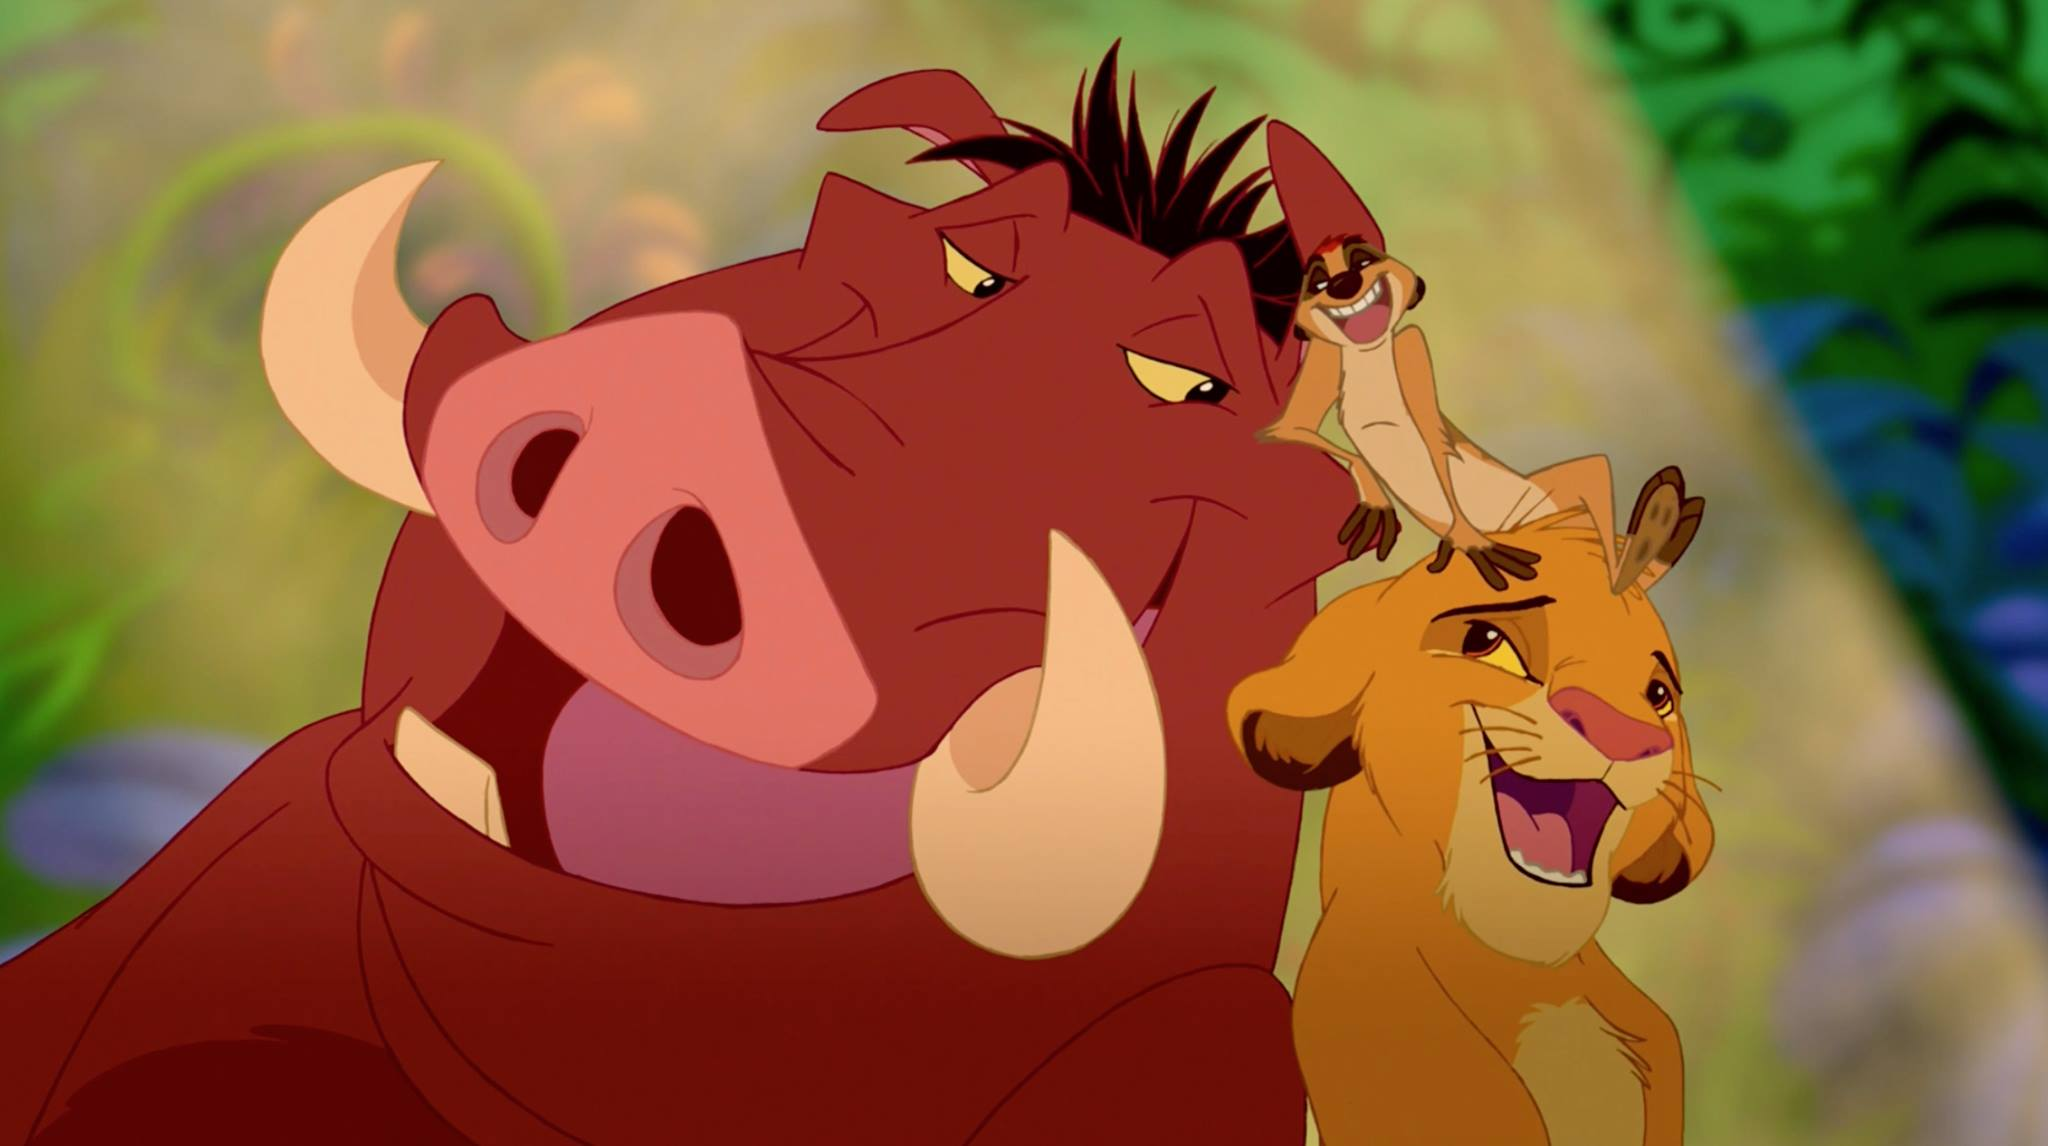 Seth rogen billy eichner are set to play timon pumba - Les aventures de timon et pumba ...